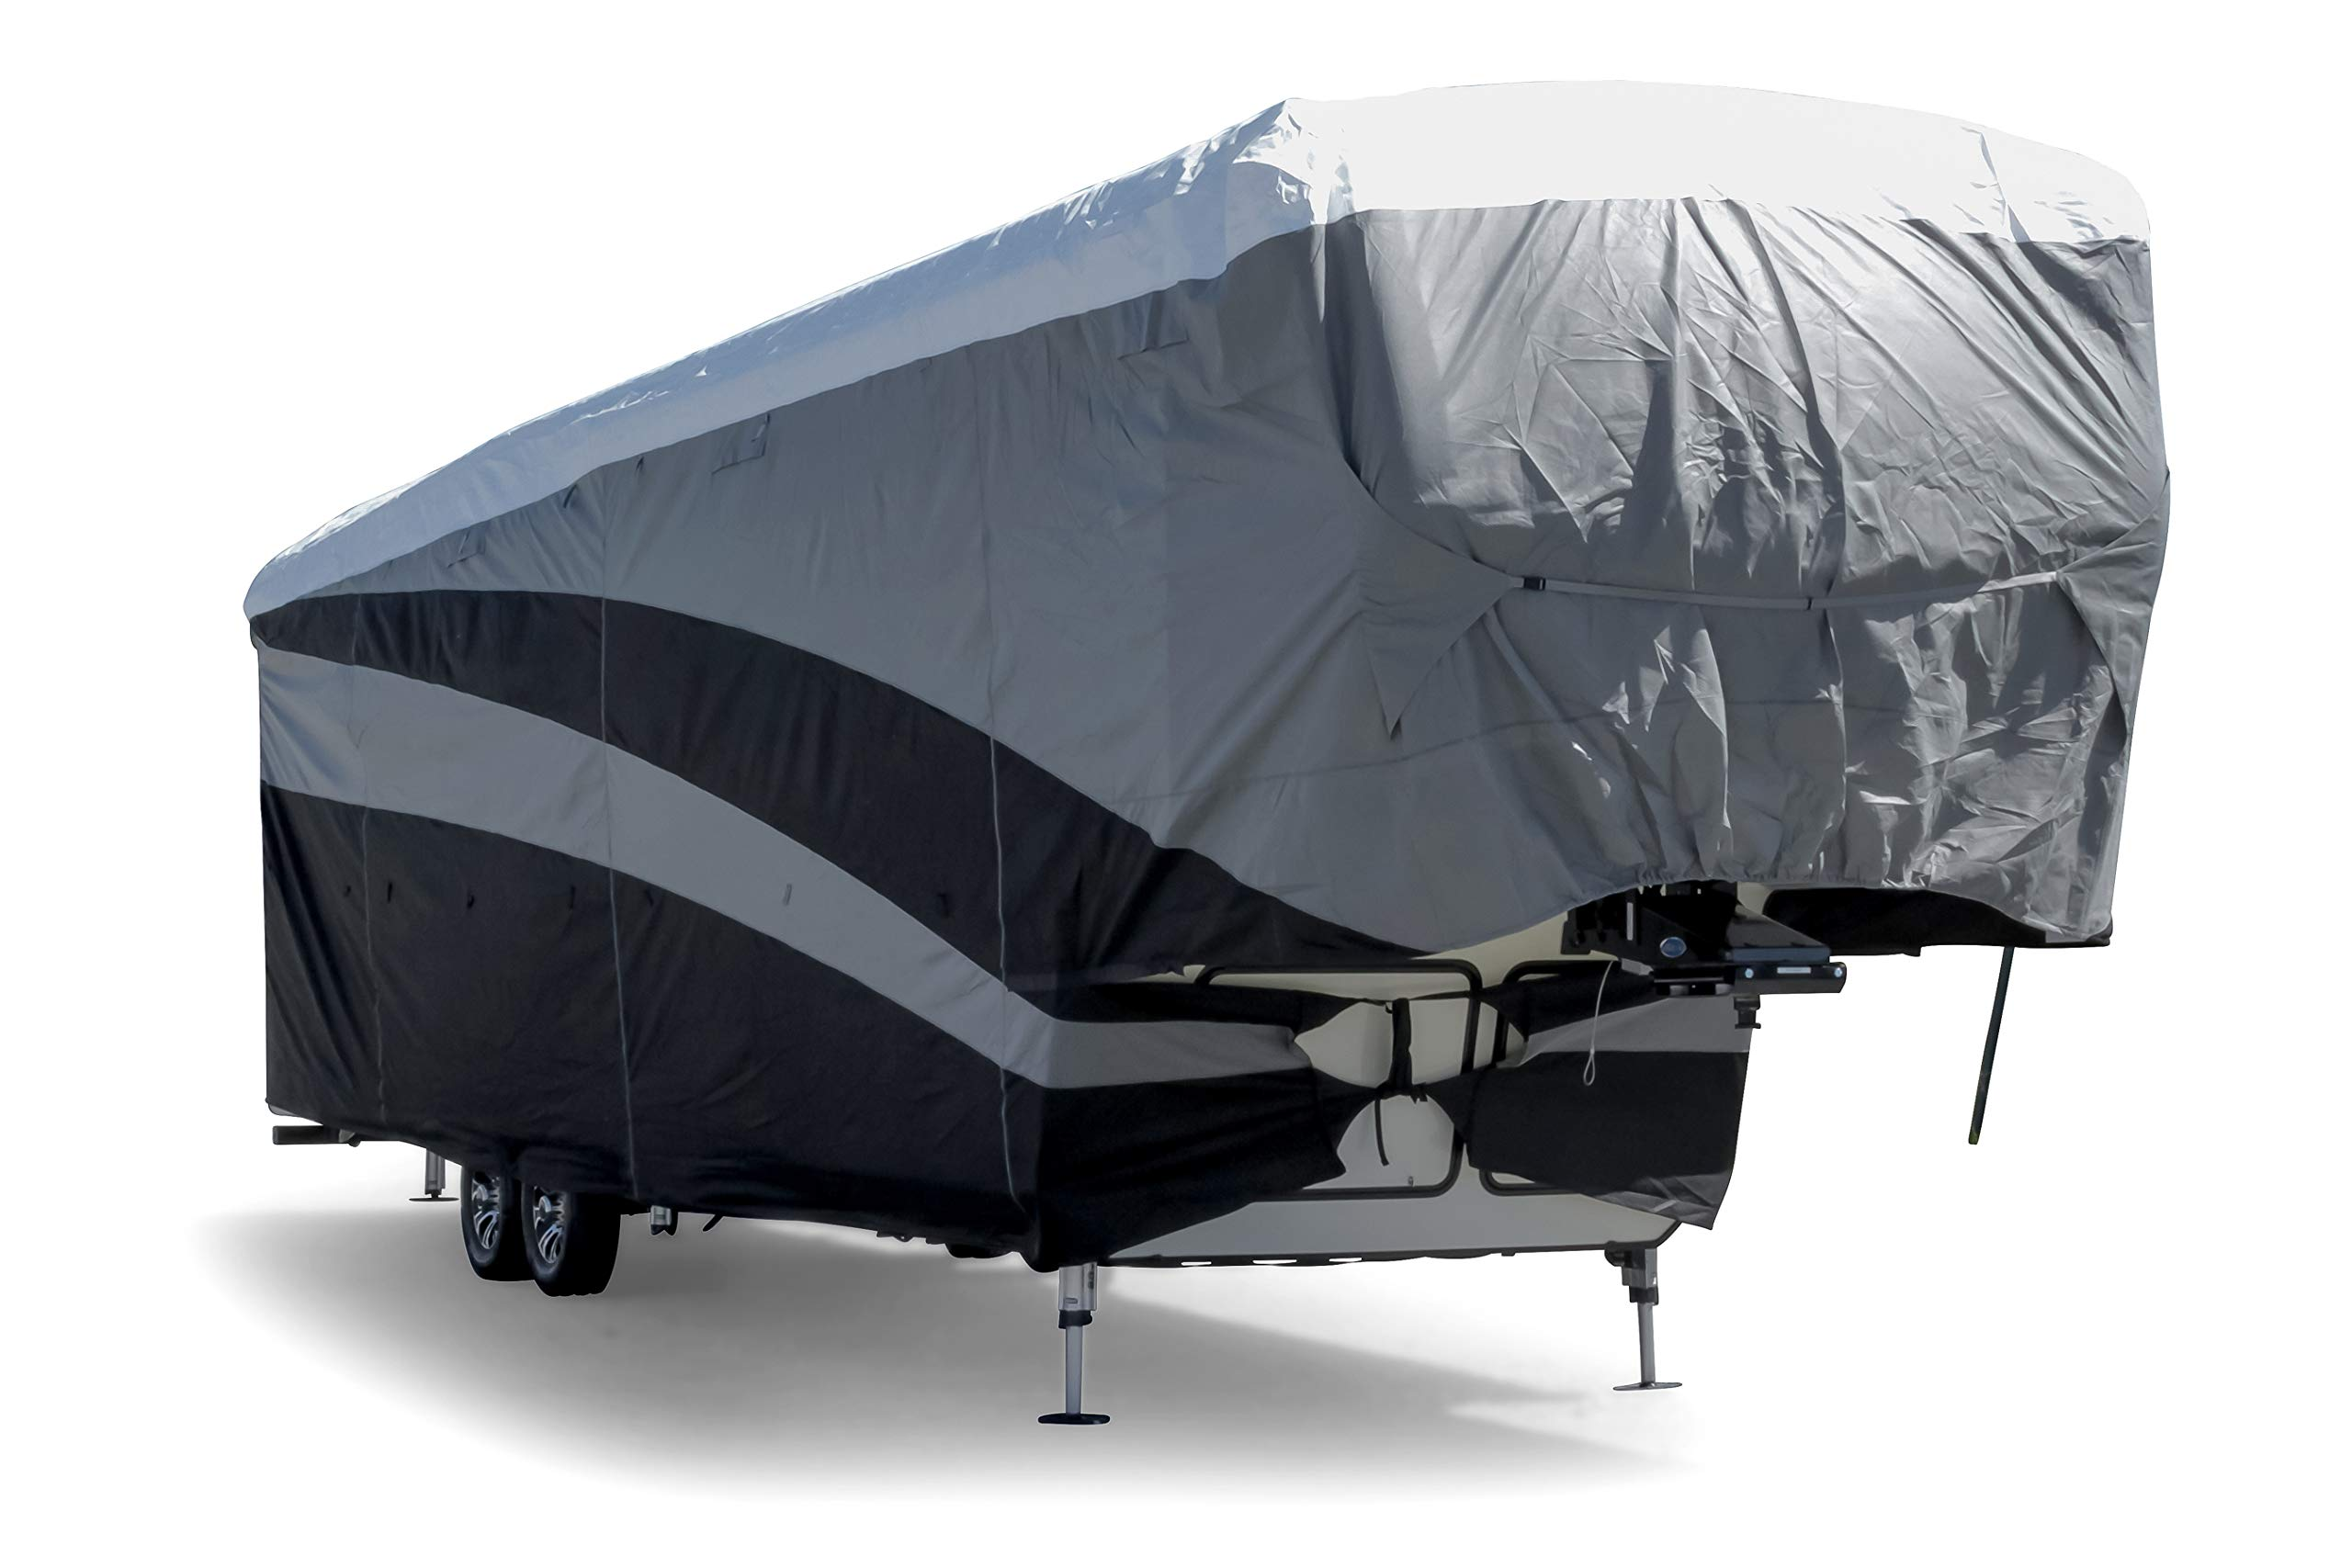 Camco ULTRAGuard Supreme RV Cover-Extremely Durable Design Fits Fifth Wheel Trailers 34' -37', Weatherproof with UV Protection and Dupont Tyvek Top (56150) by Camco (Image #1)